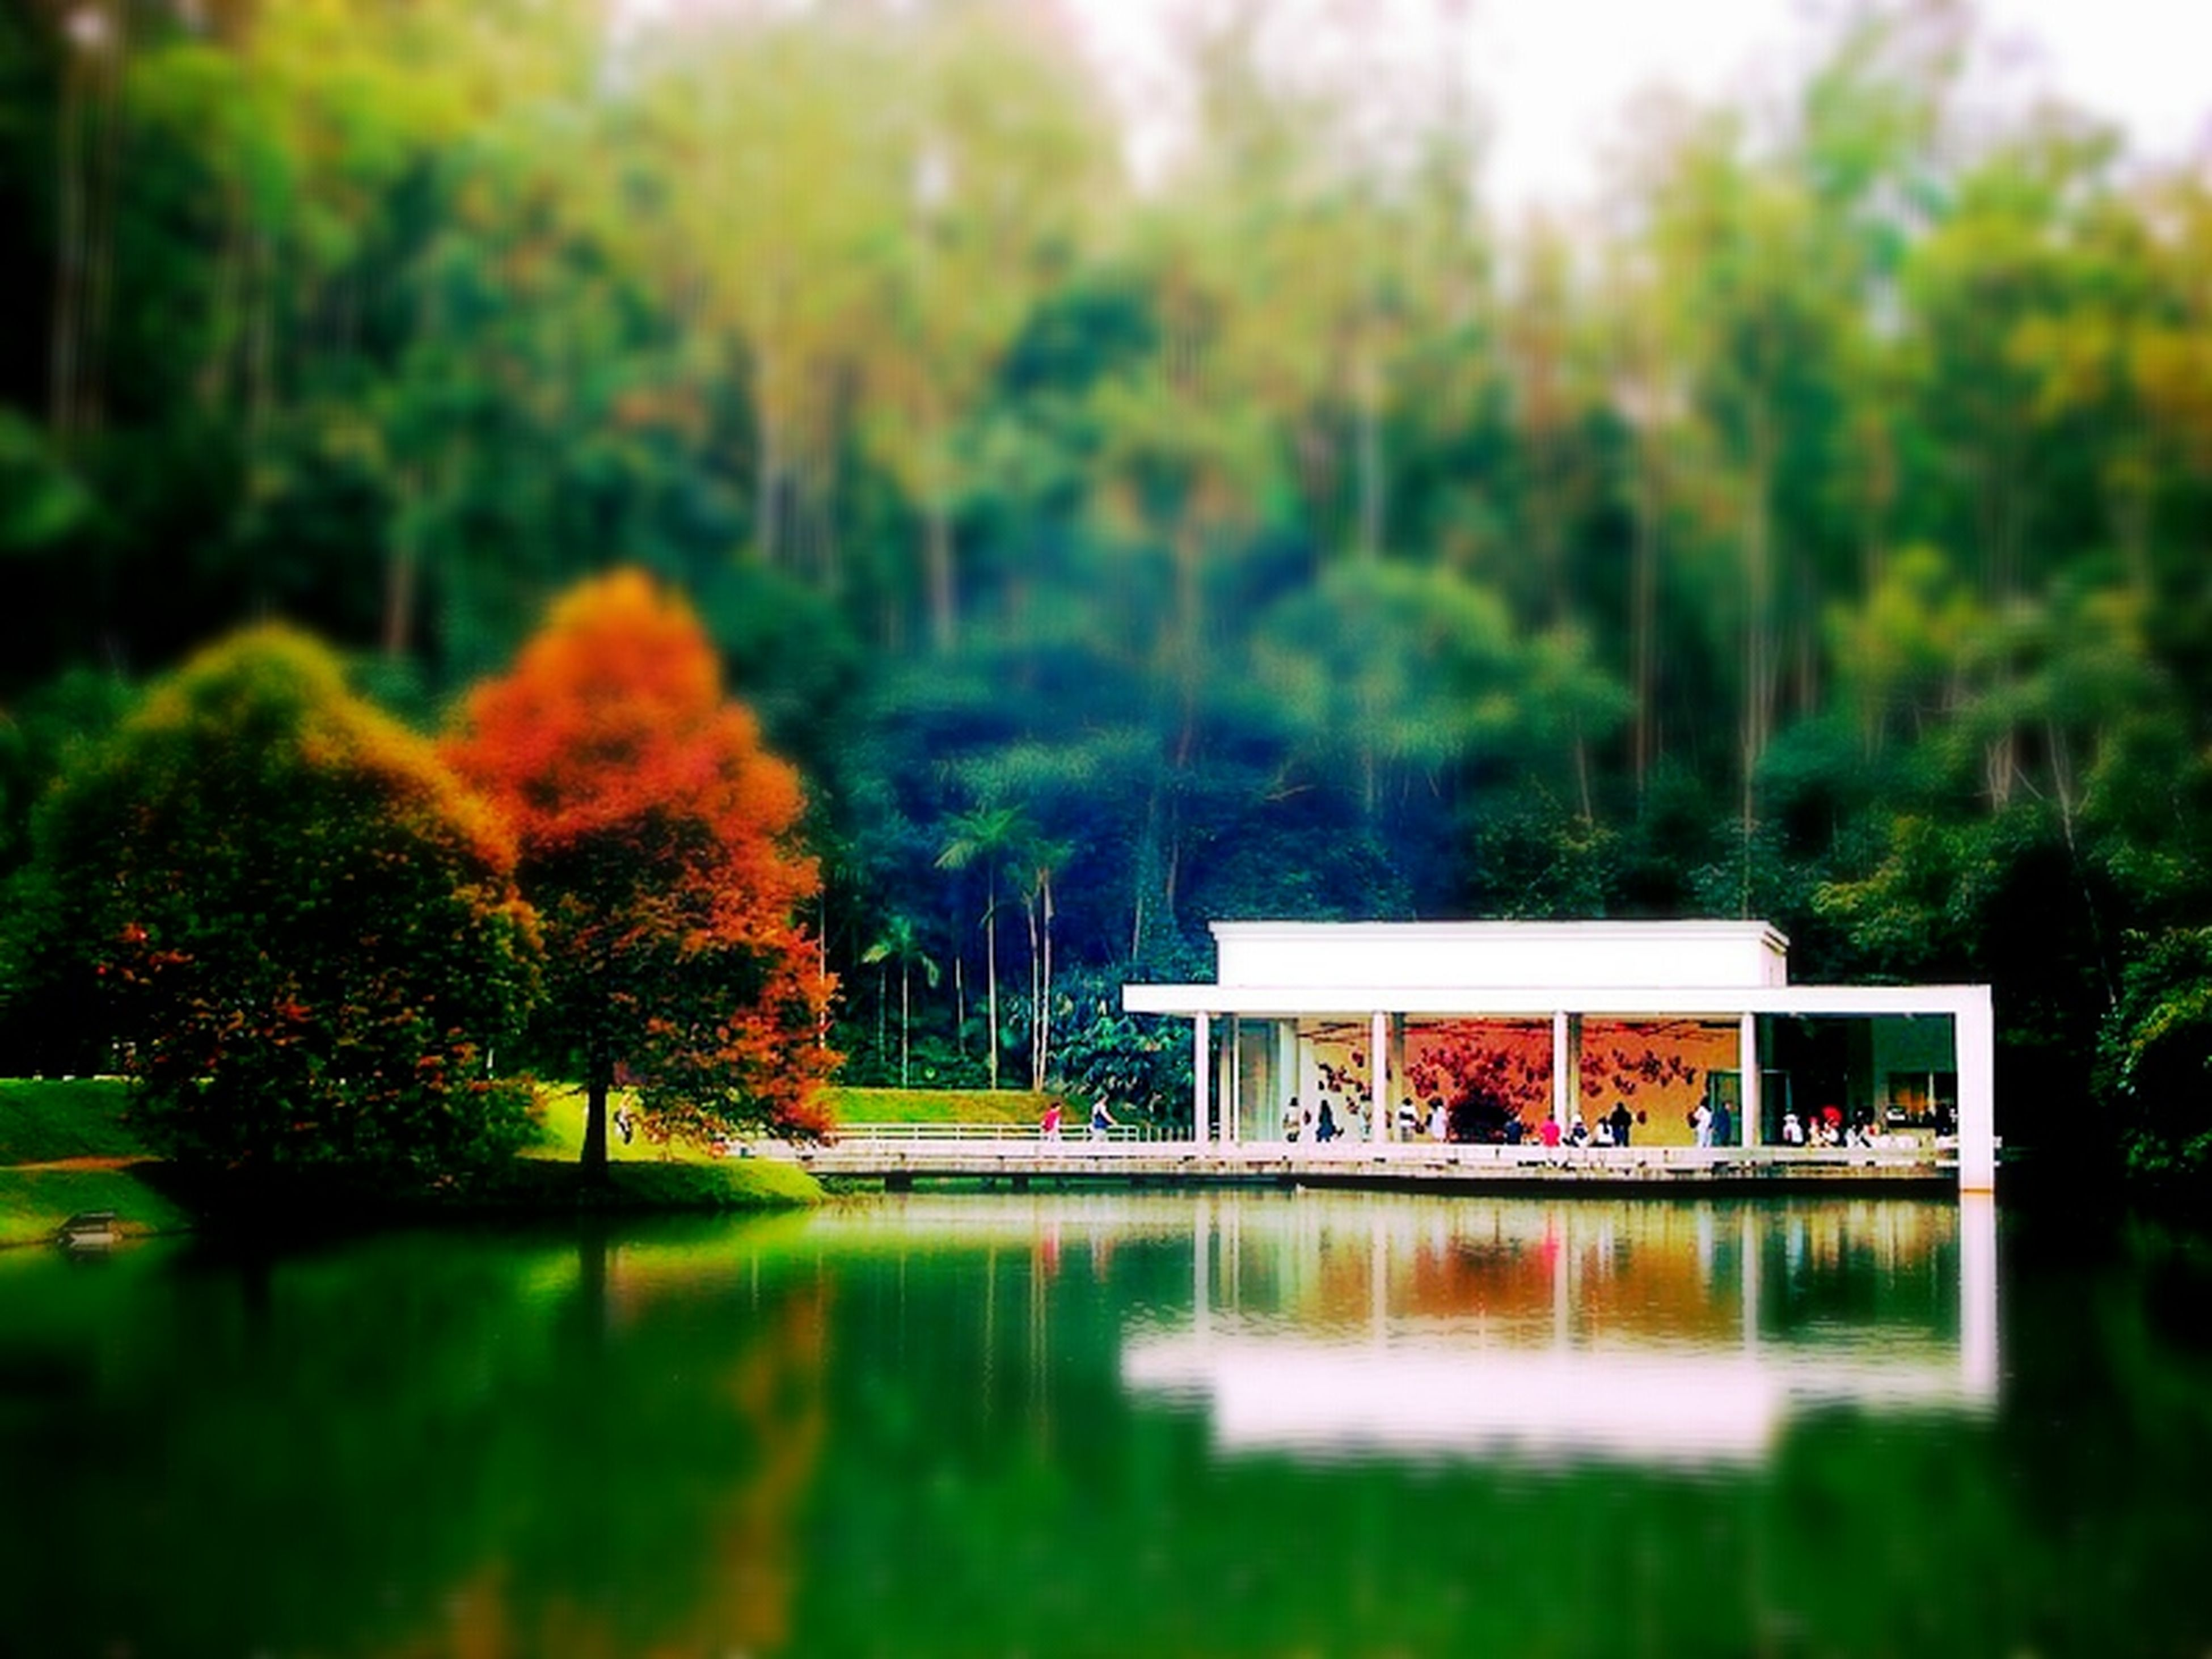 tree, water, reflection, waterfront, built structure, architecture, growth, building exterior, lake, nature, tranquility, tranquil scene, green color, beauty in nature, house, autumn, pond, day, outdoors, scenics